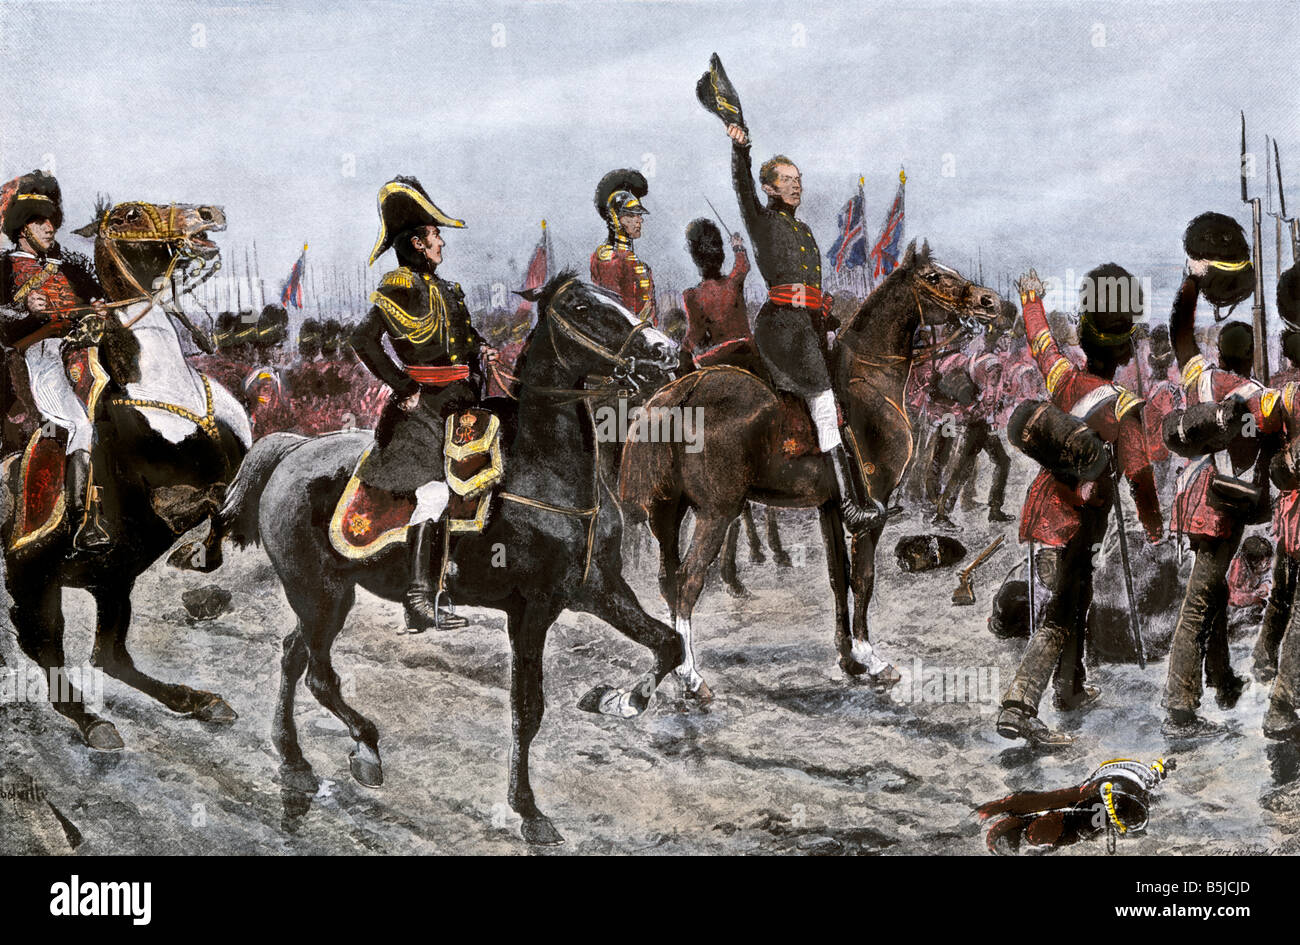 Duke of Wellington ordering the entire British line to advance at the Battle of Waterloo 1815. Hand-colored halftone - Stock Image